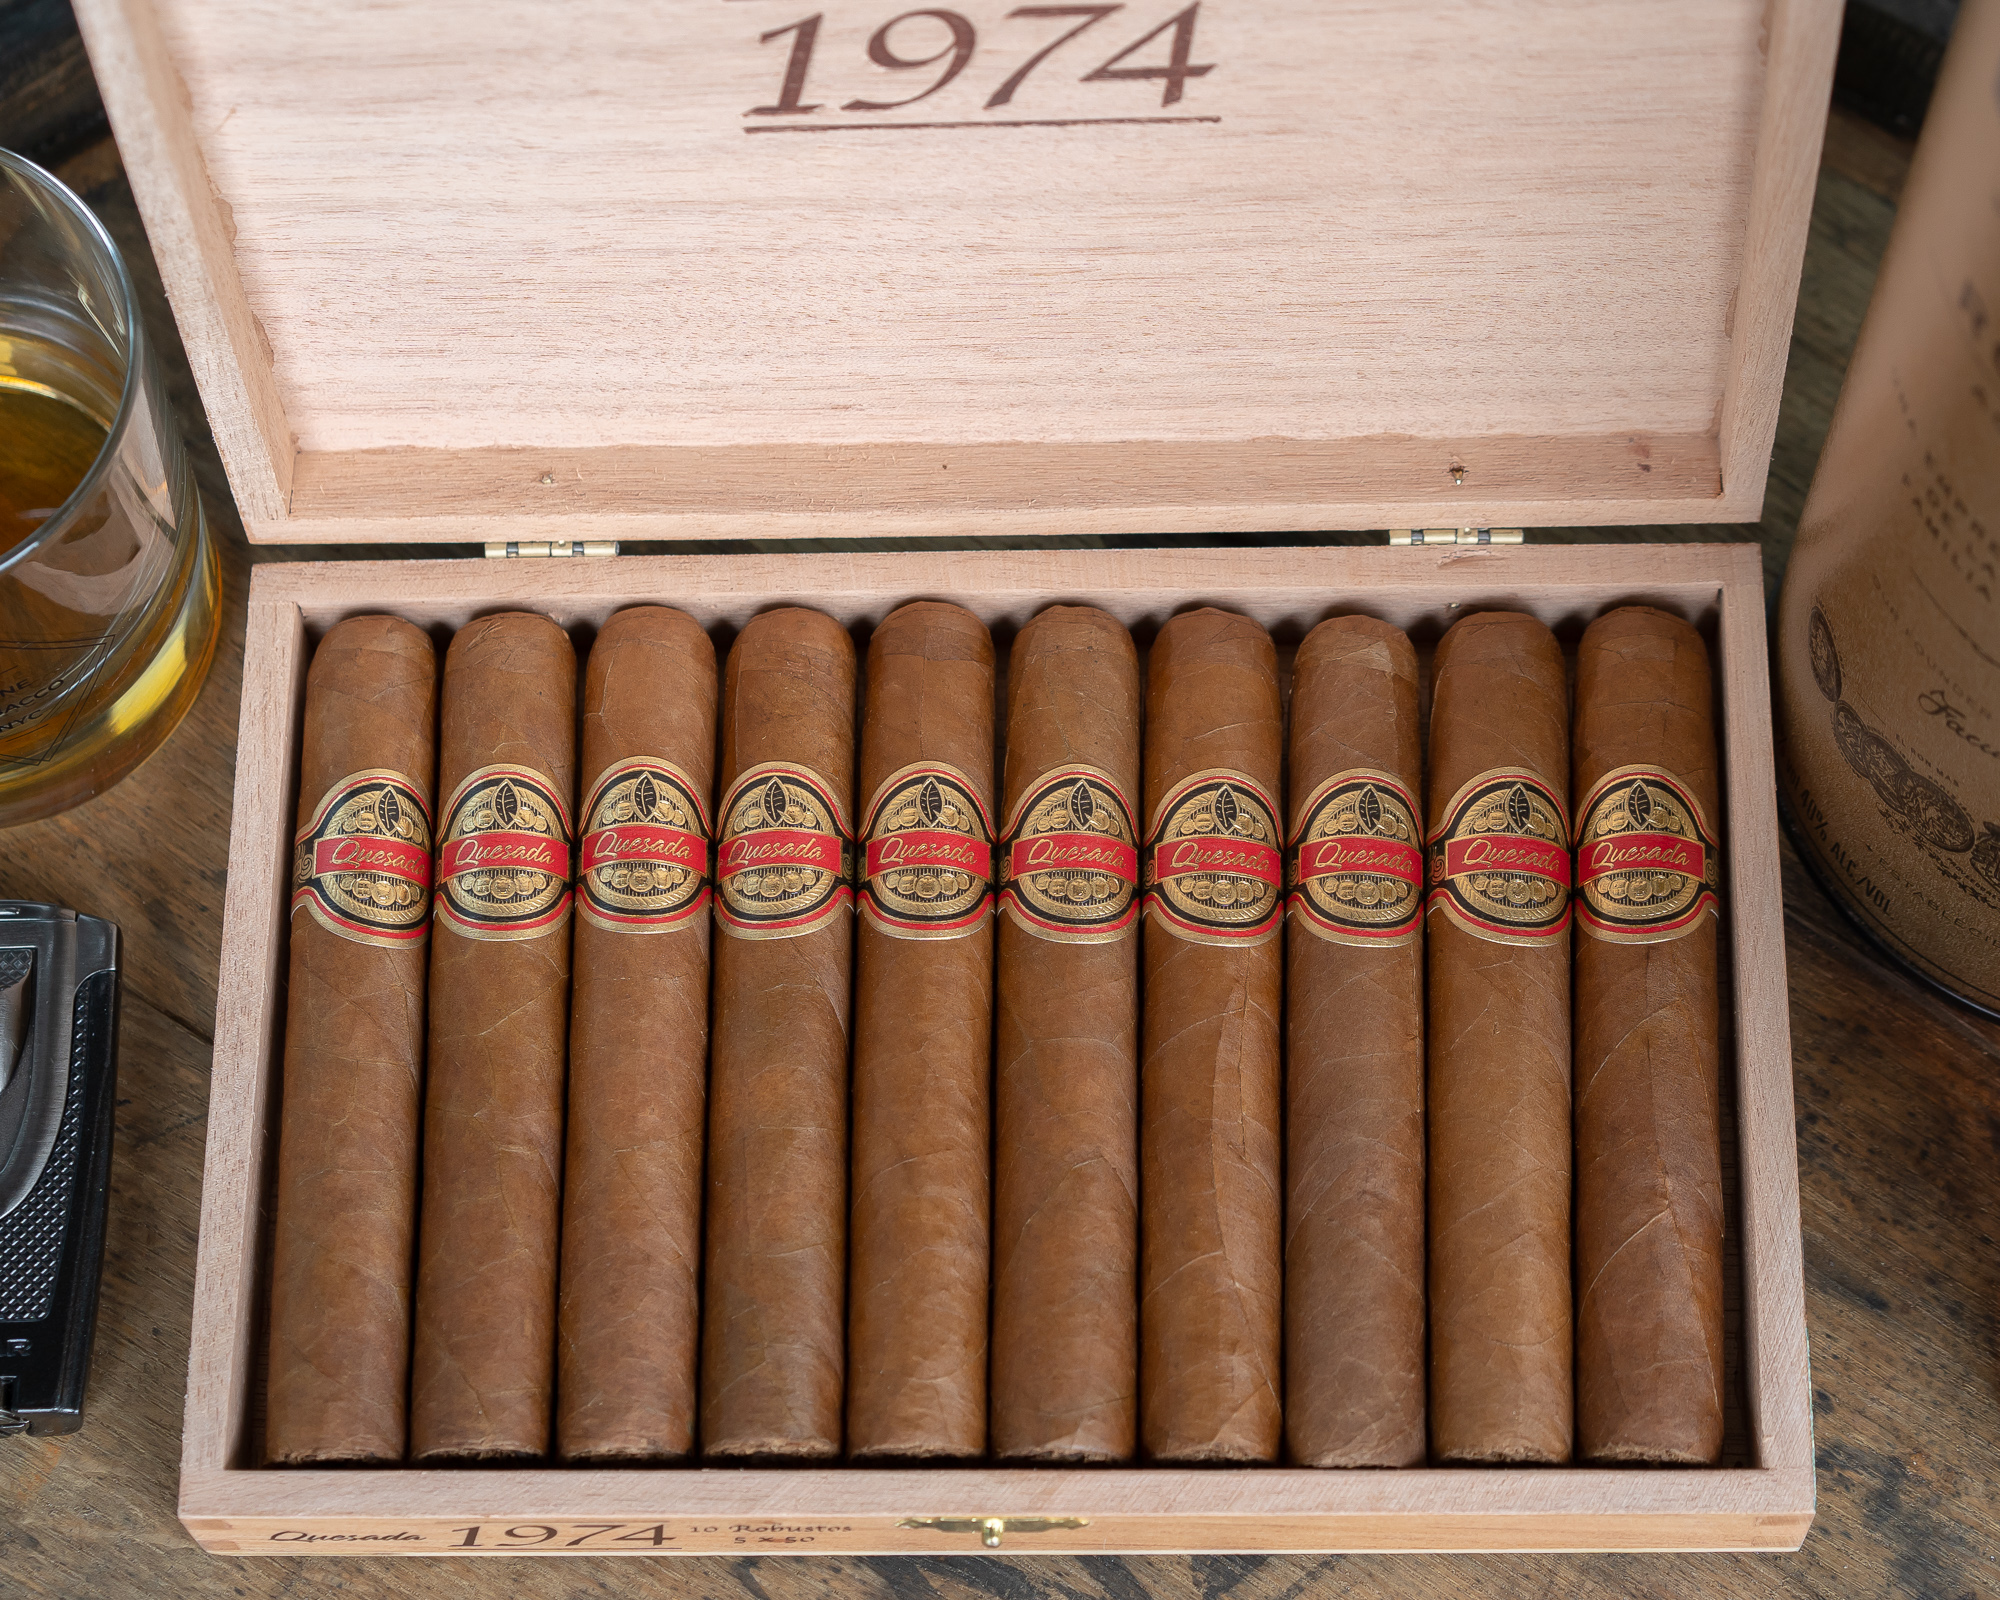 Quesada 1974 Review